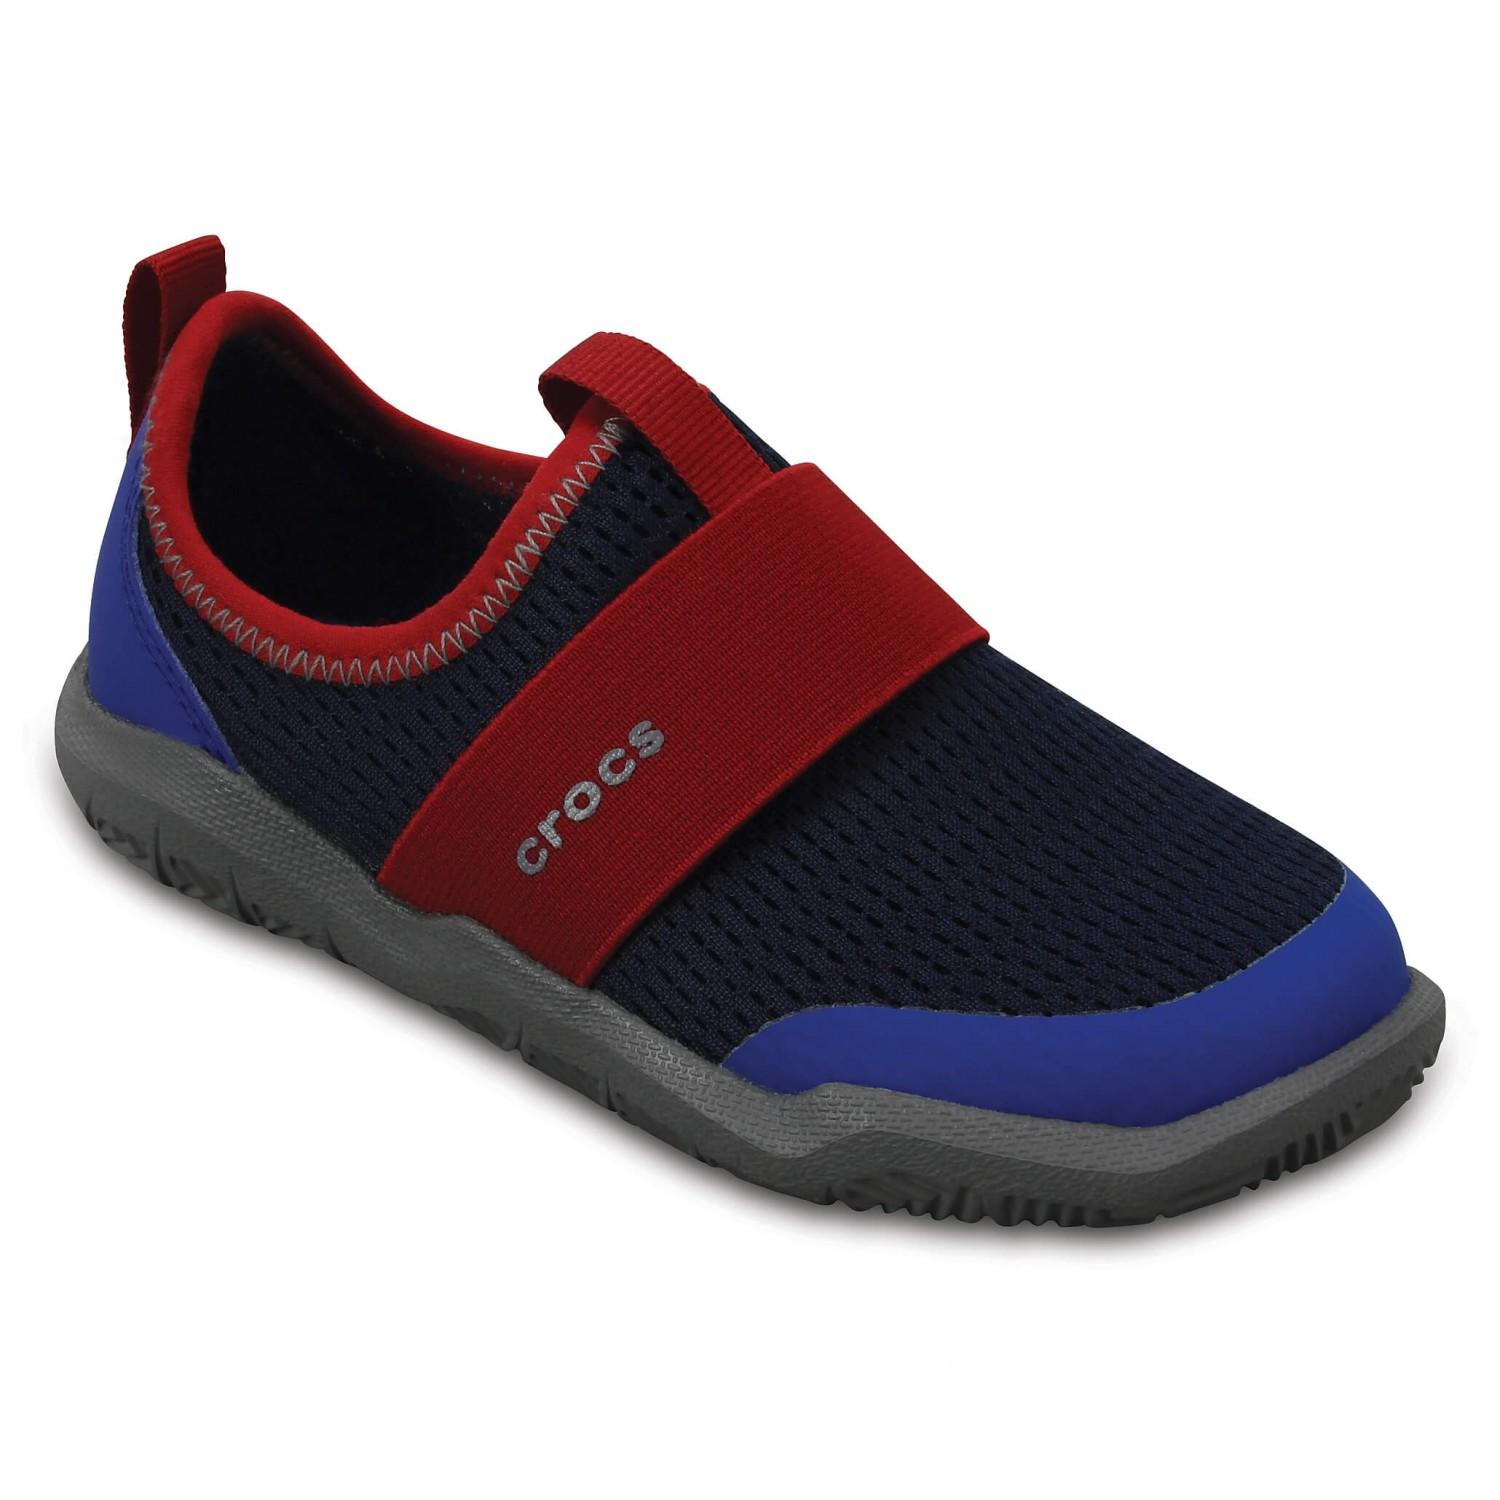 a8d38b108545 Crocs - Kid s Swiftwater Easy-On Shoe - Sandals